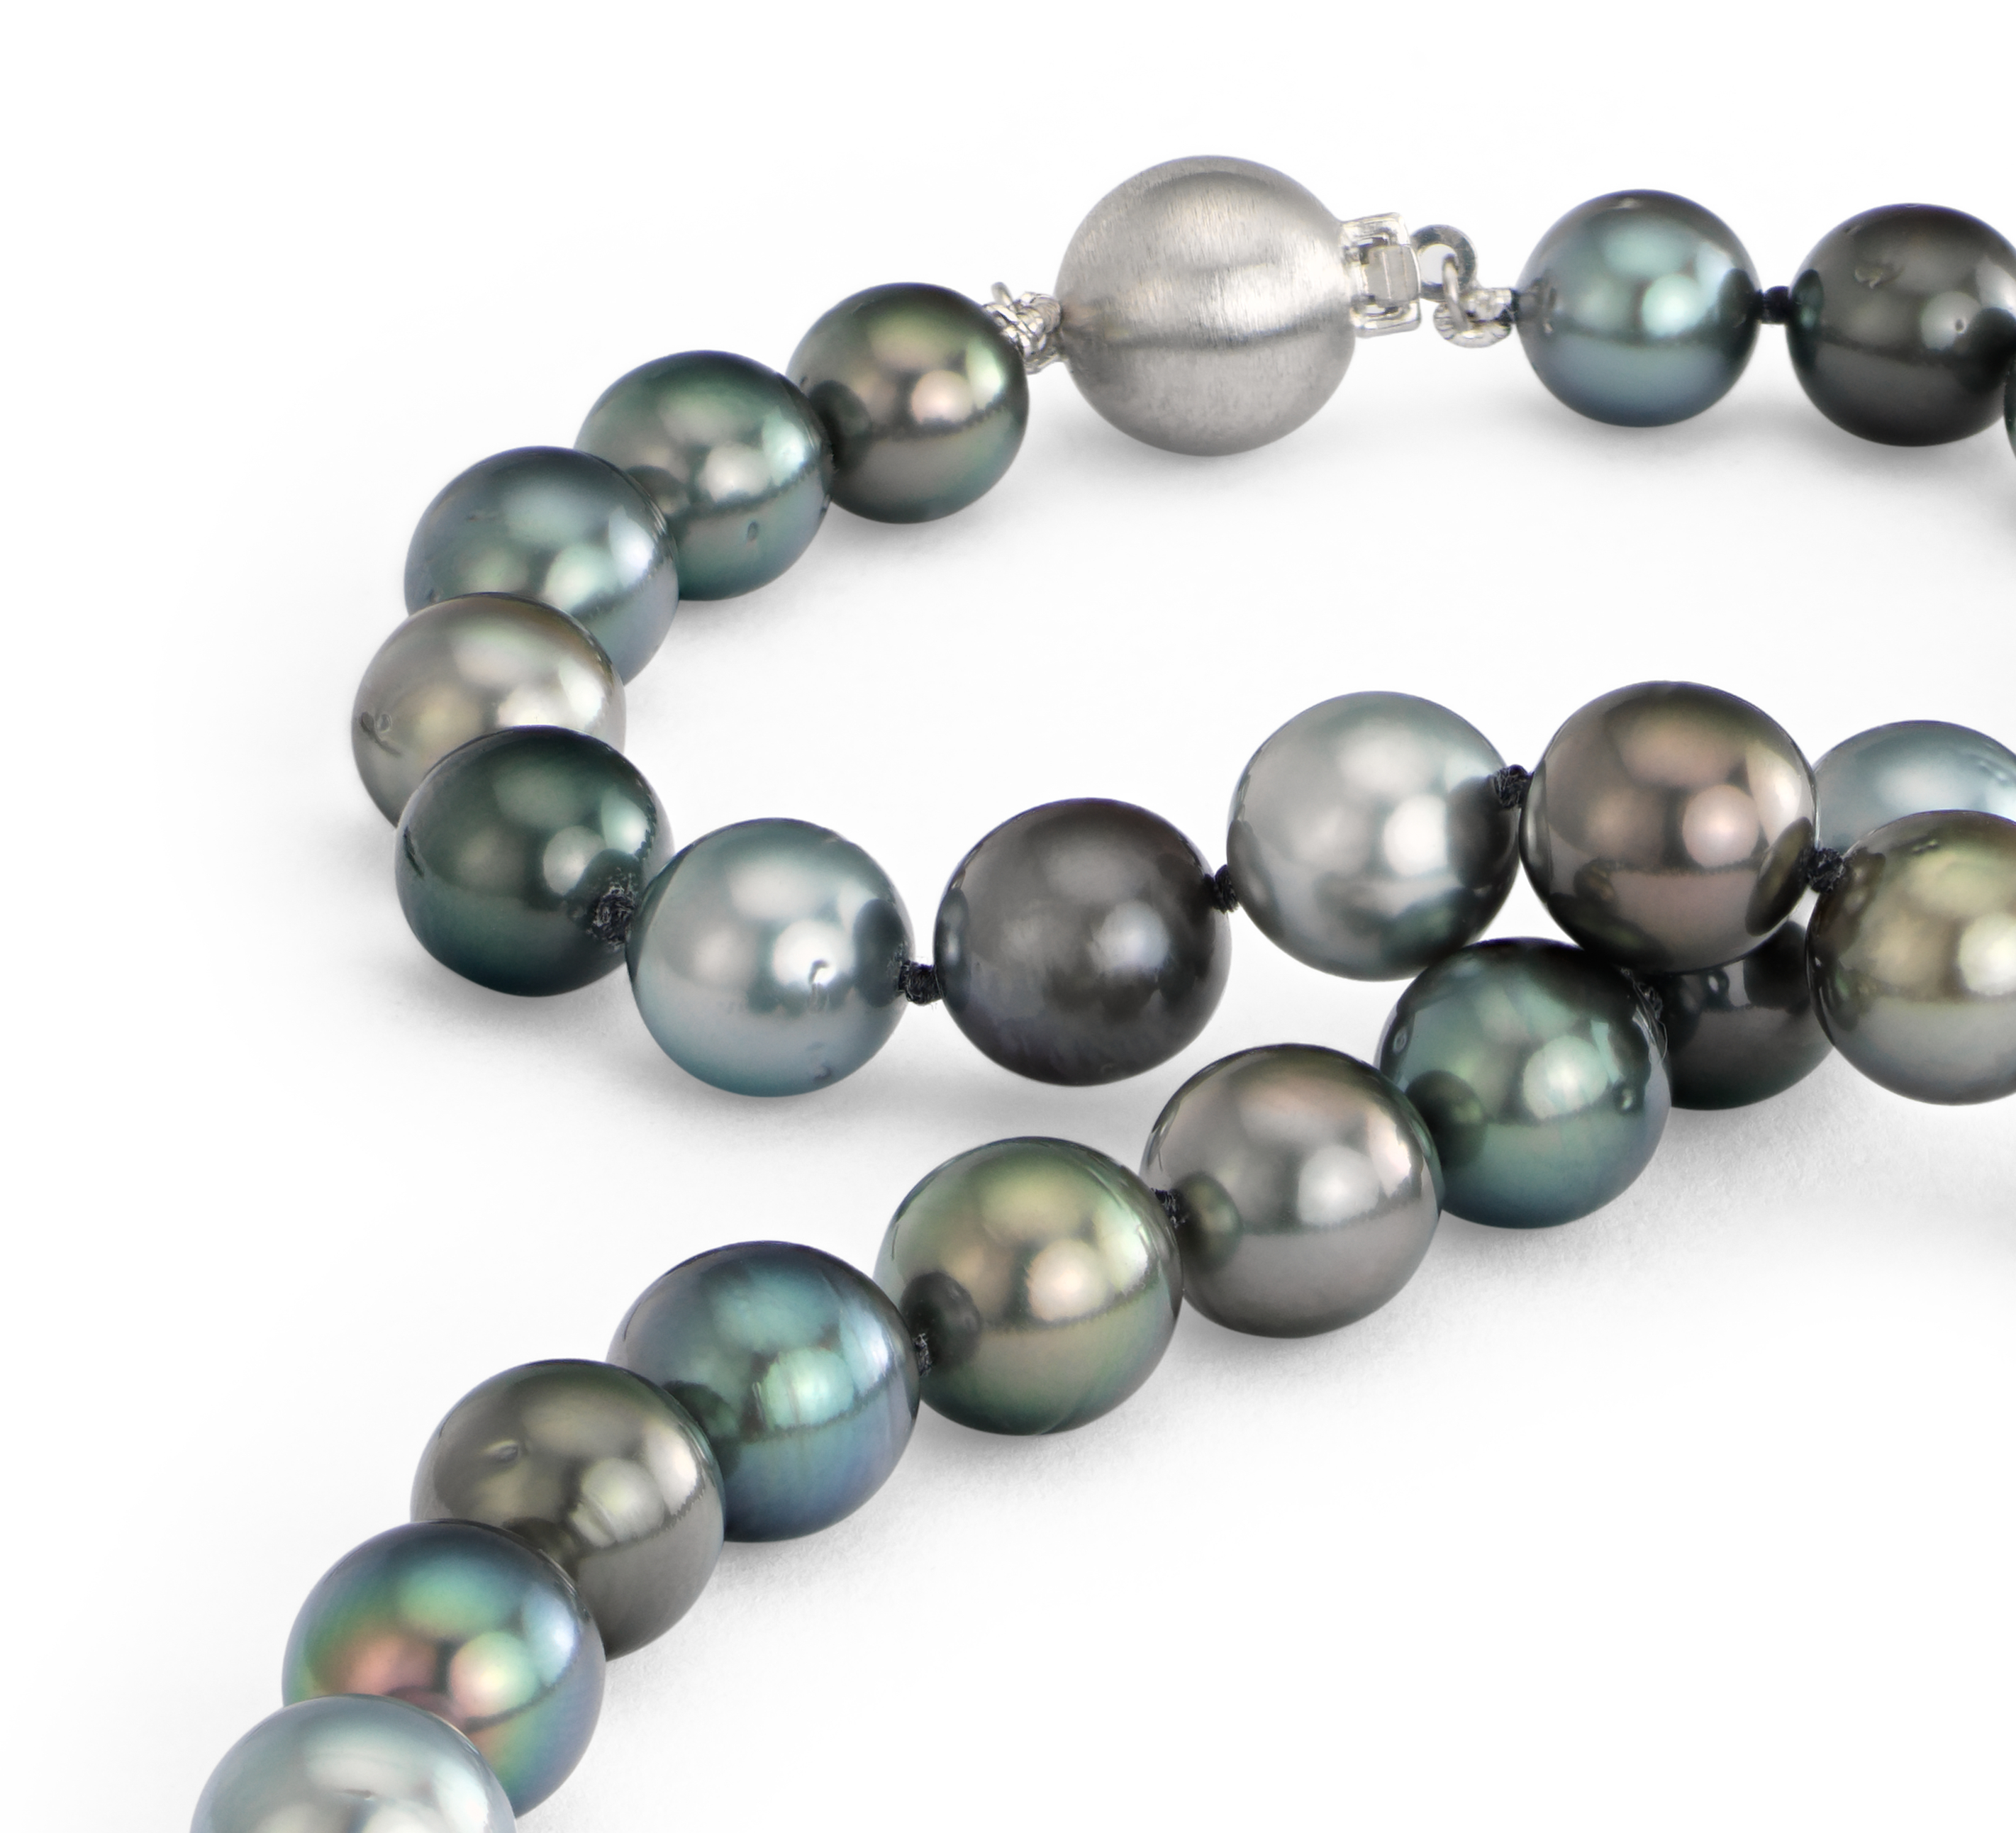 Multi-Colour Tahitian Cultured Pearl Necklace in 18k White Gold